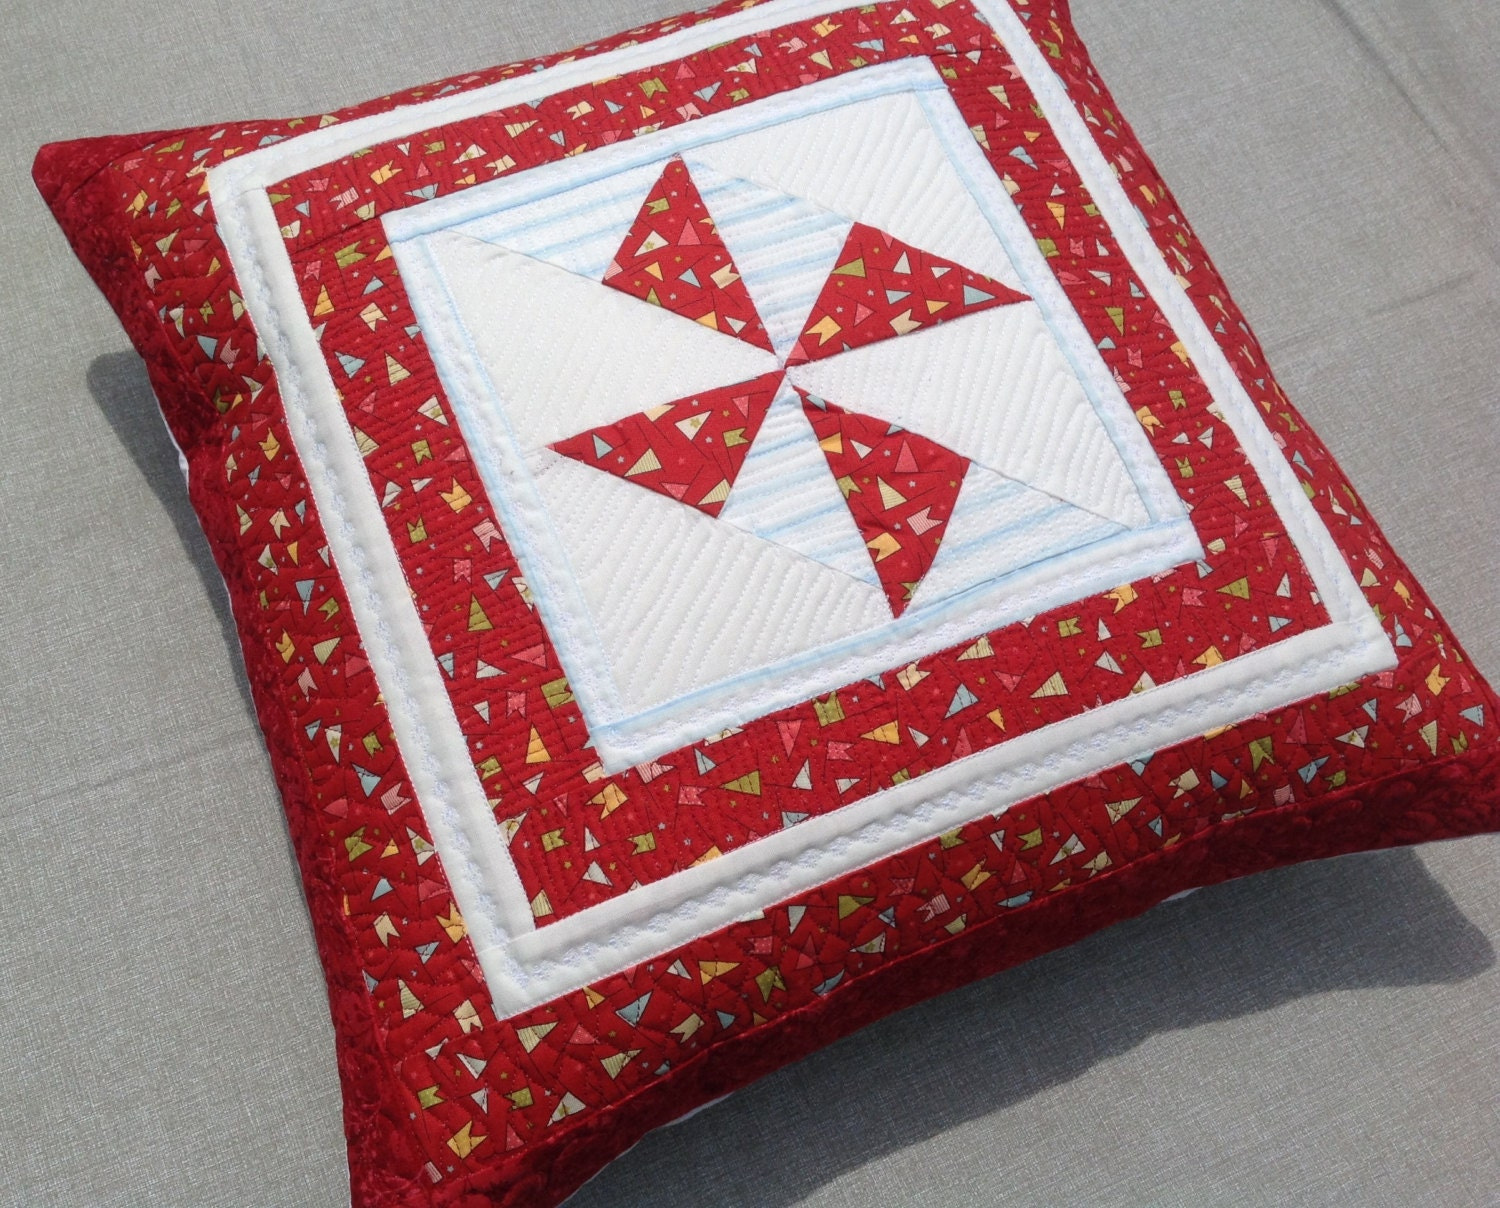 White Quilted Decorative Pillows : Quilted pillow red pinwheel pillow decorative pillow